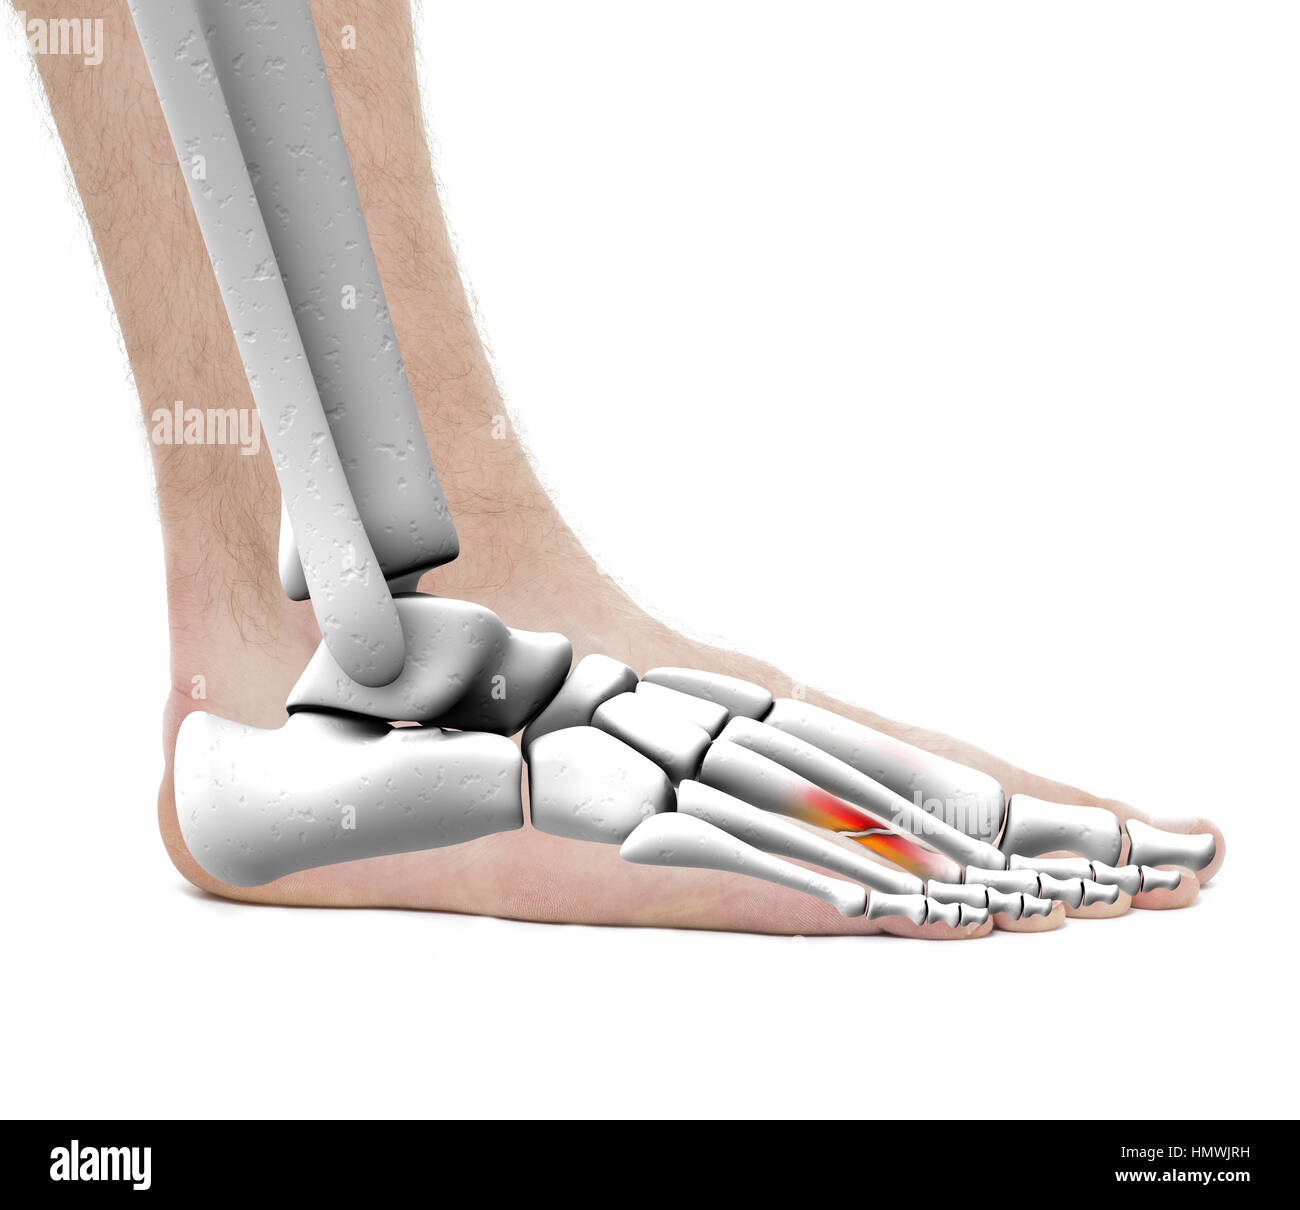 Foot Fracture Metatarsal Bone - Anatomy Male - Studio photo isolated ...